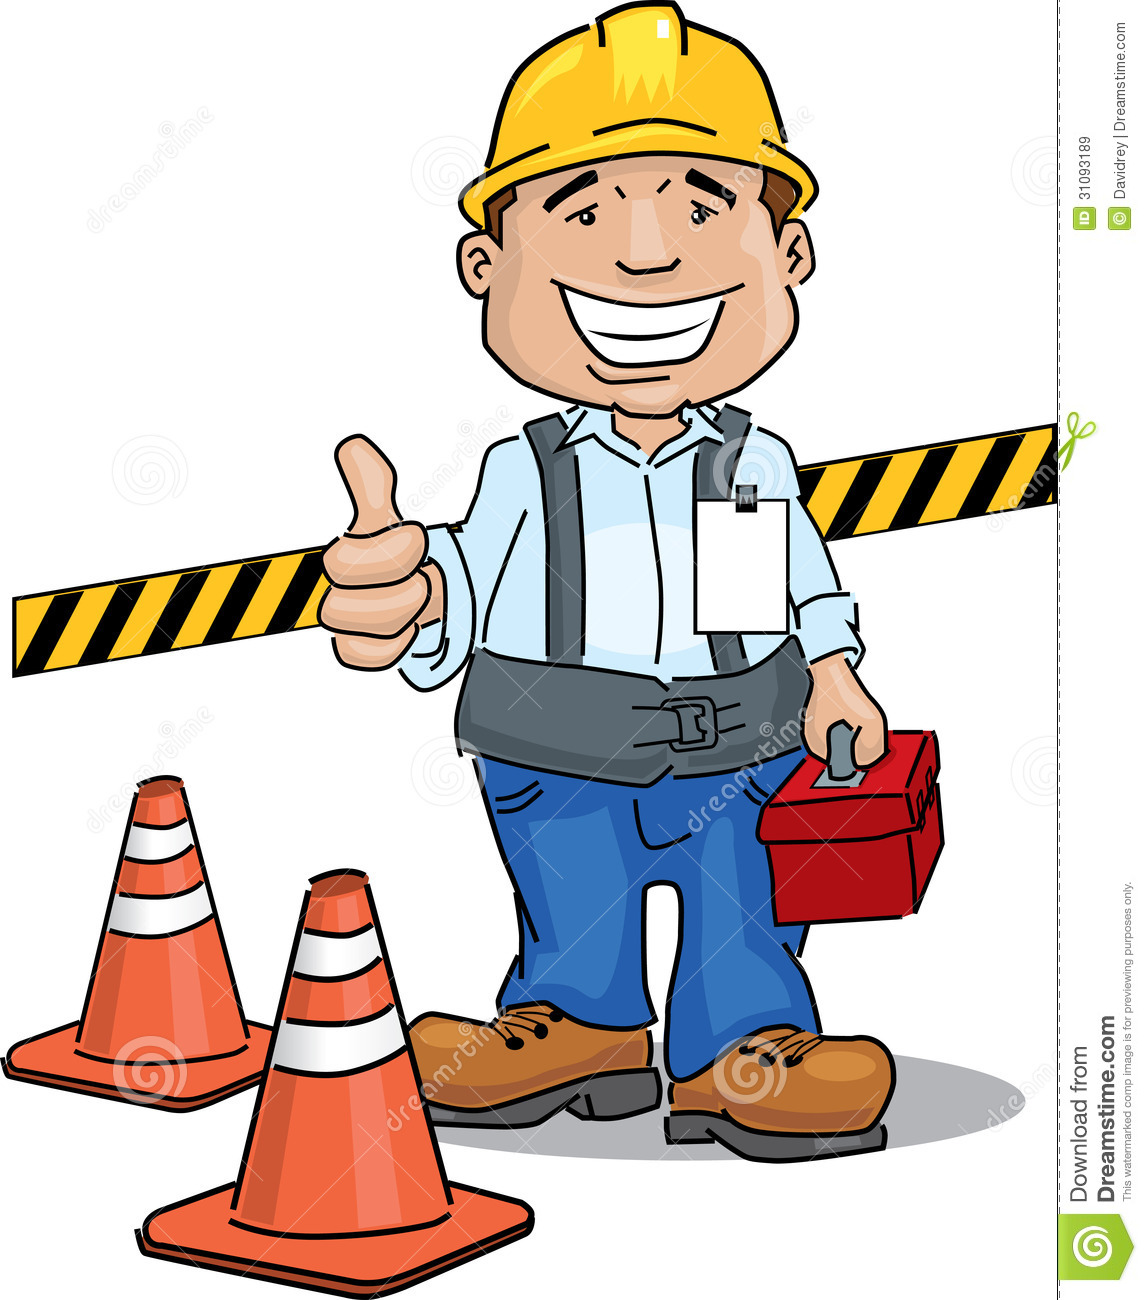 1147x1300 Construction Worker Clipart Many Interesting Cliparts